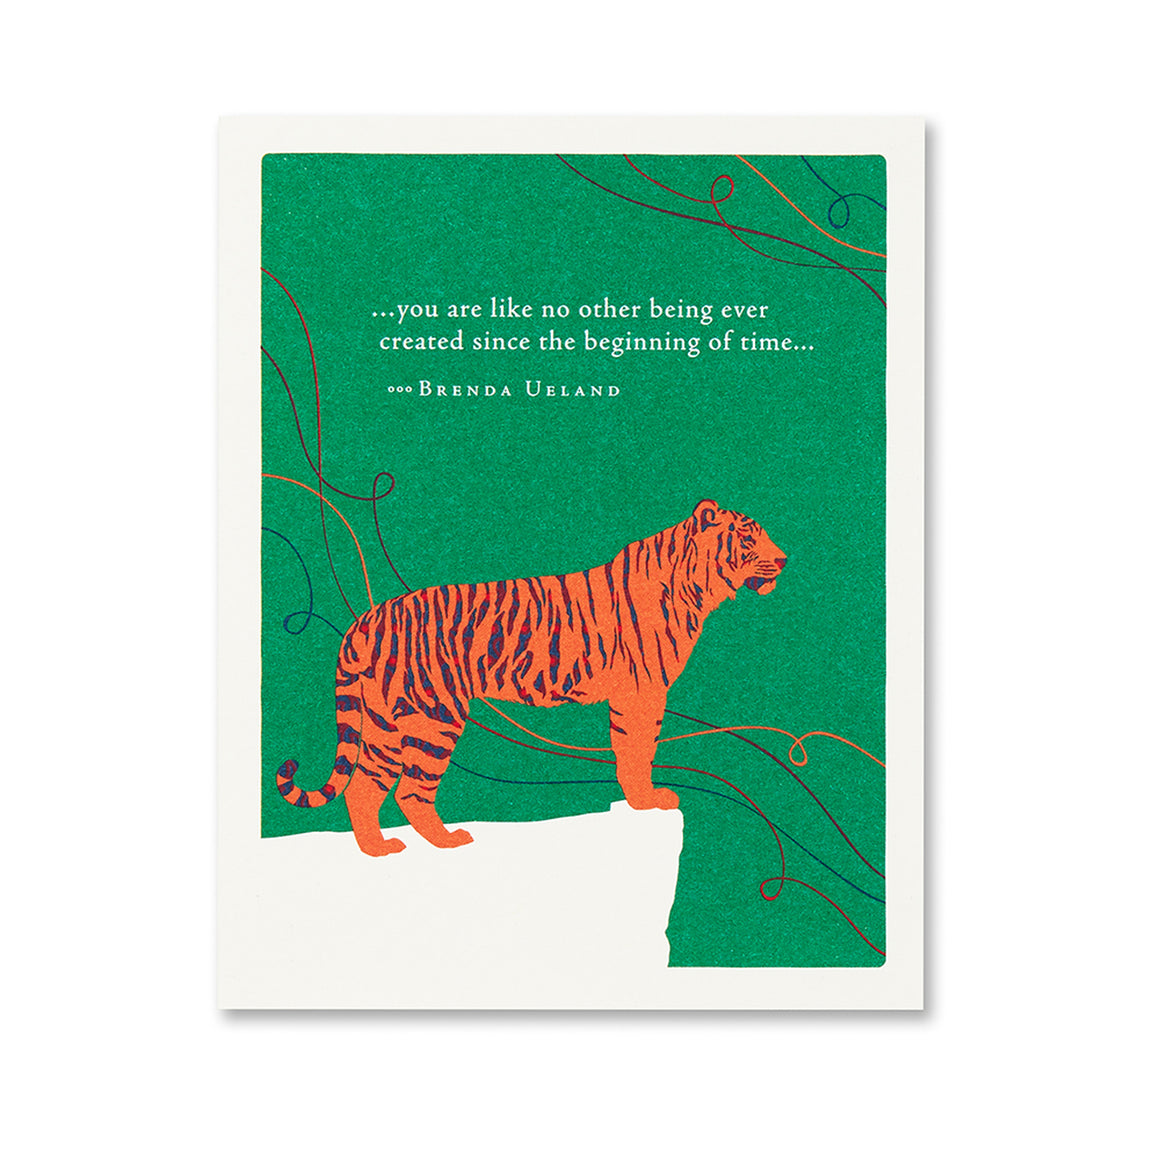 Positively Green Greeting Card - You are like no other being...